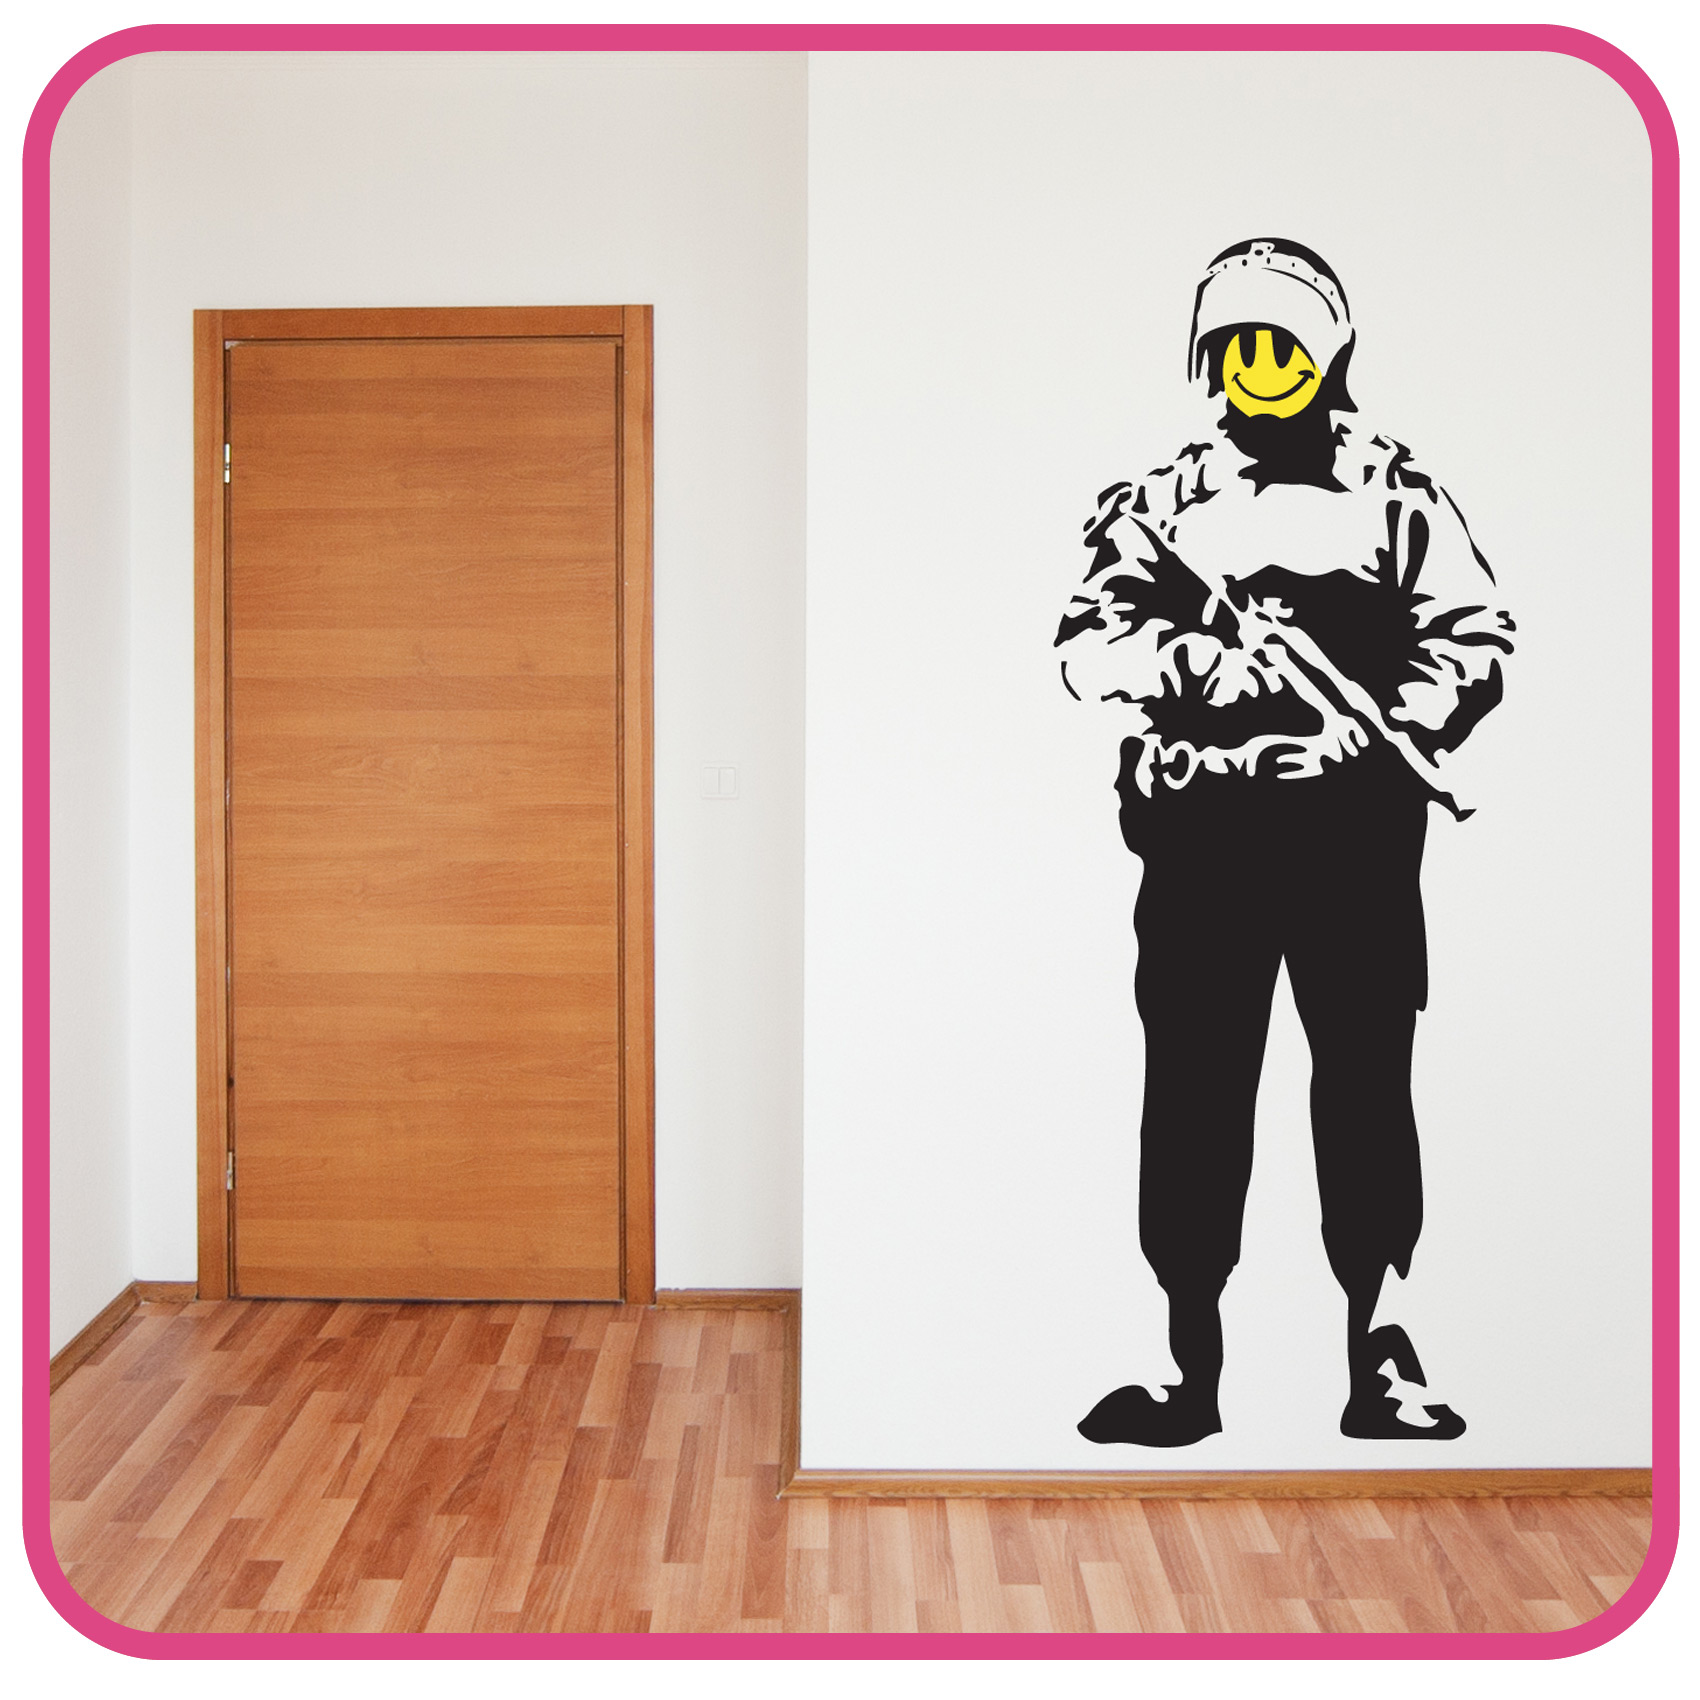 Wall Art Stickers Banksy : Banksy style acid soldier wall art sticker decal